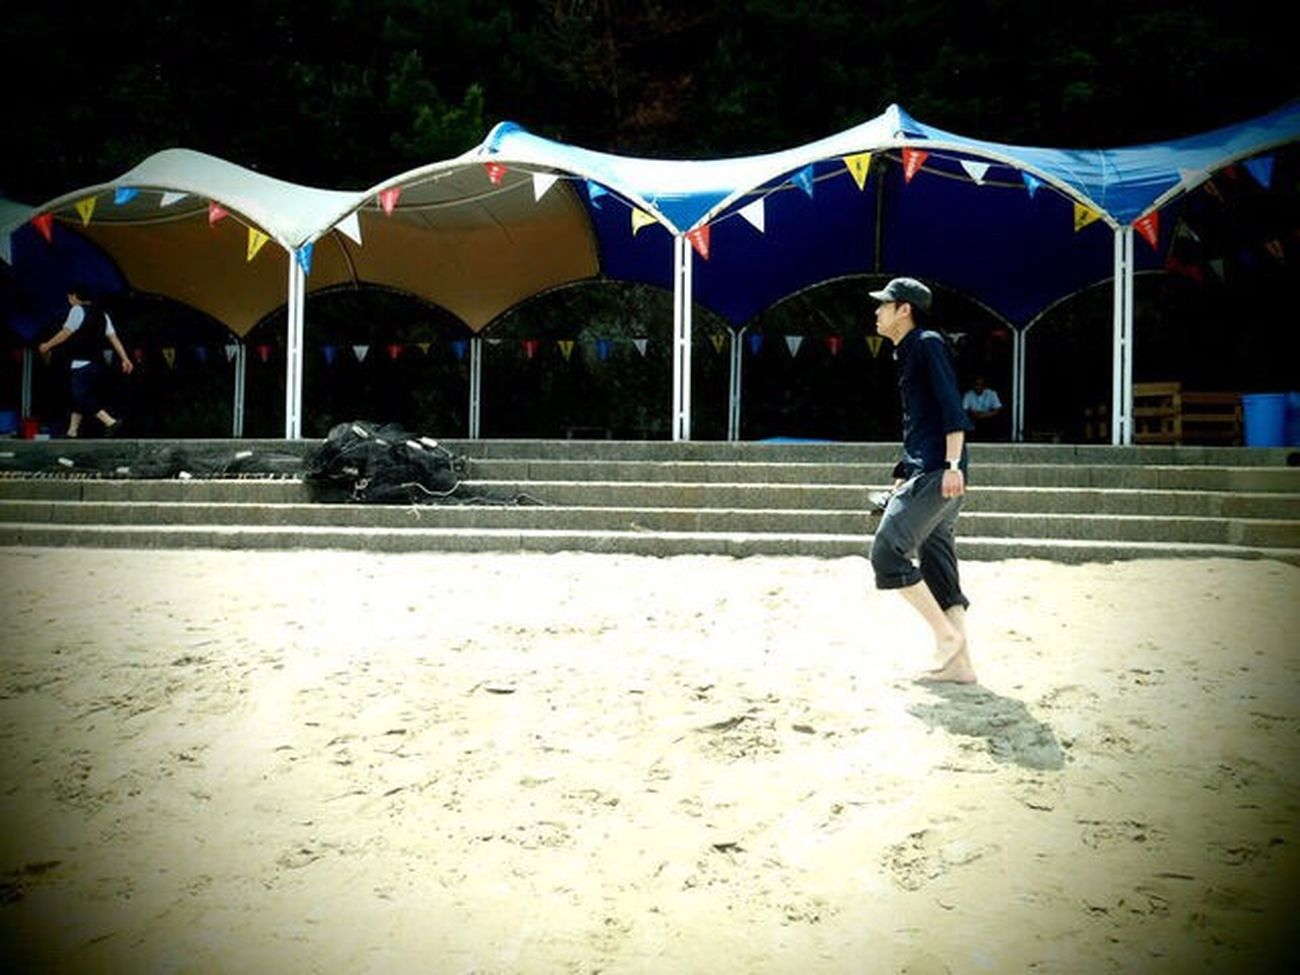 Full Length Beach Sand Exploring W/Satoshi Portrait Snap Snapshot Snapshots Of Life One Man Only Young Adult Sunny Day Daily Life Everydaycarry Smallisland 友ヶ島 Out Of The Box Streetphotography Place Of Heart EyeEmNewHere 세계 Live For The Story The Portraitist - 2017 EyeEm Awards The Street Photographer - 2017 EyeEm Awards The Photojournalist - 2017 EyeEm Awards Place Of Heart The Great Outdoors - 2017 EyeEm Awards EyeEmNewHere